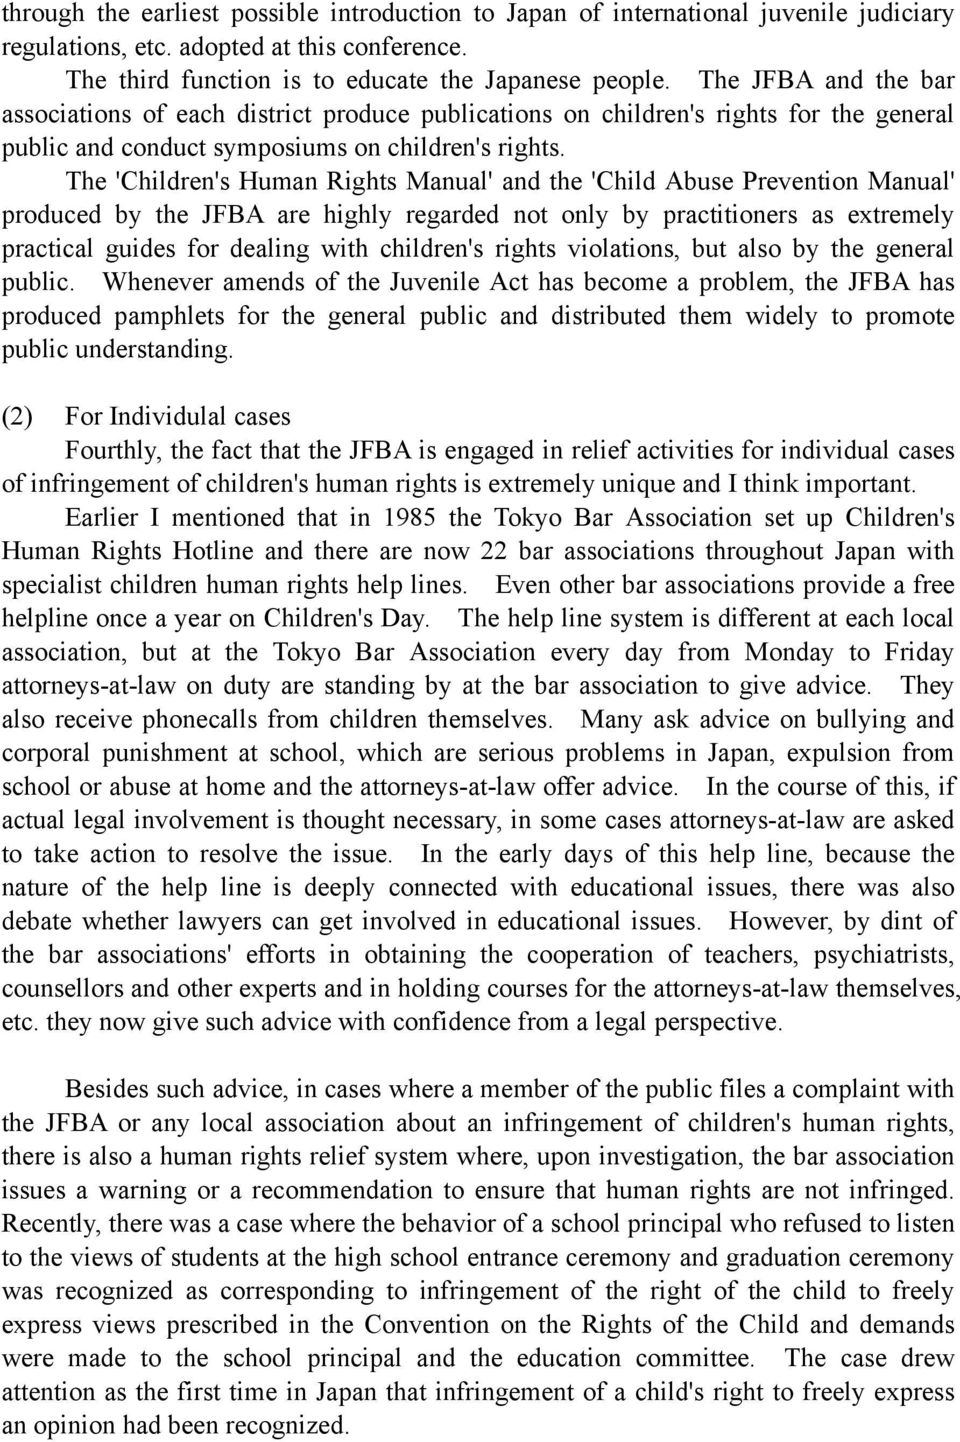 The 'Children's Human Rights Manual' and the 'Child Abuse Prevention Manual' produced by the JFBA are highly regarded not only by practitioners as extremely practical guides for dealing with